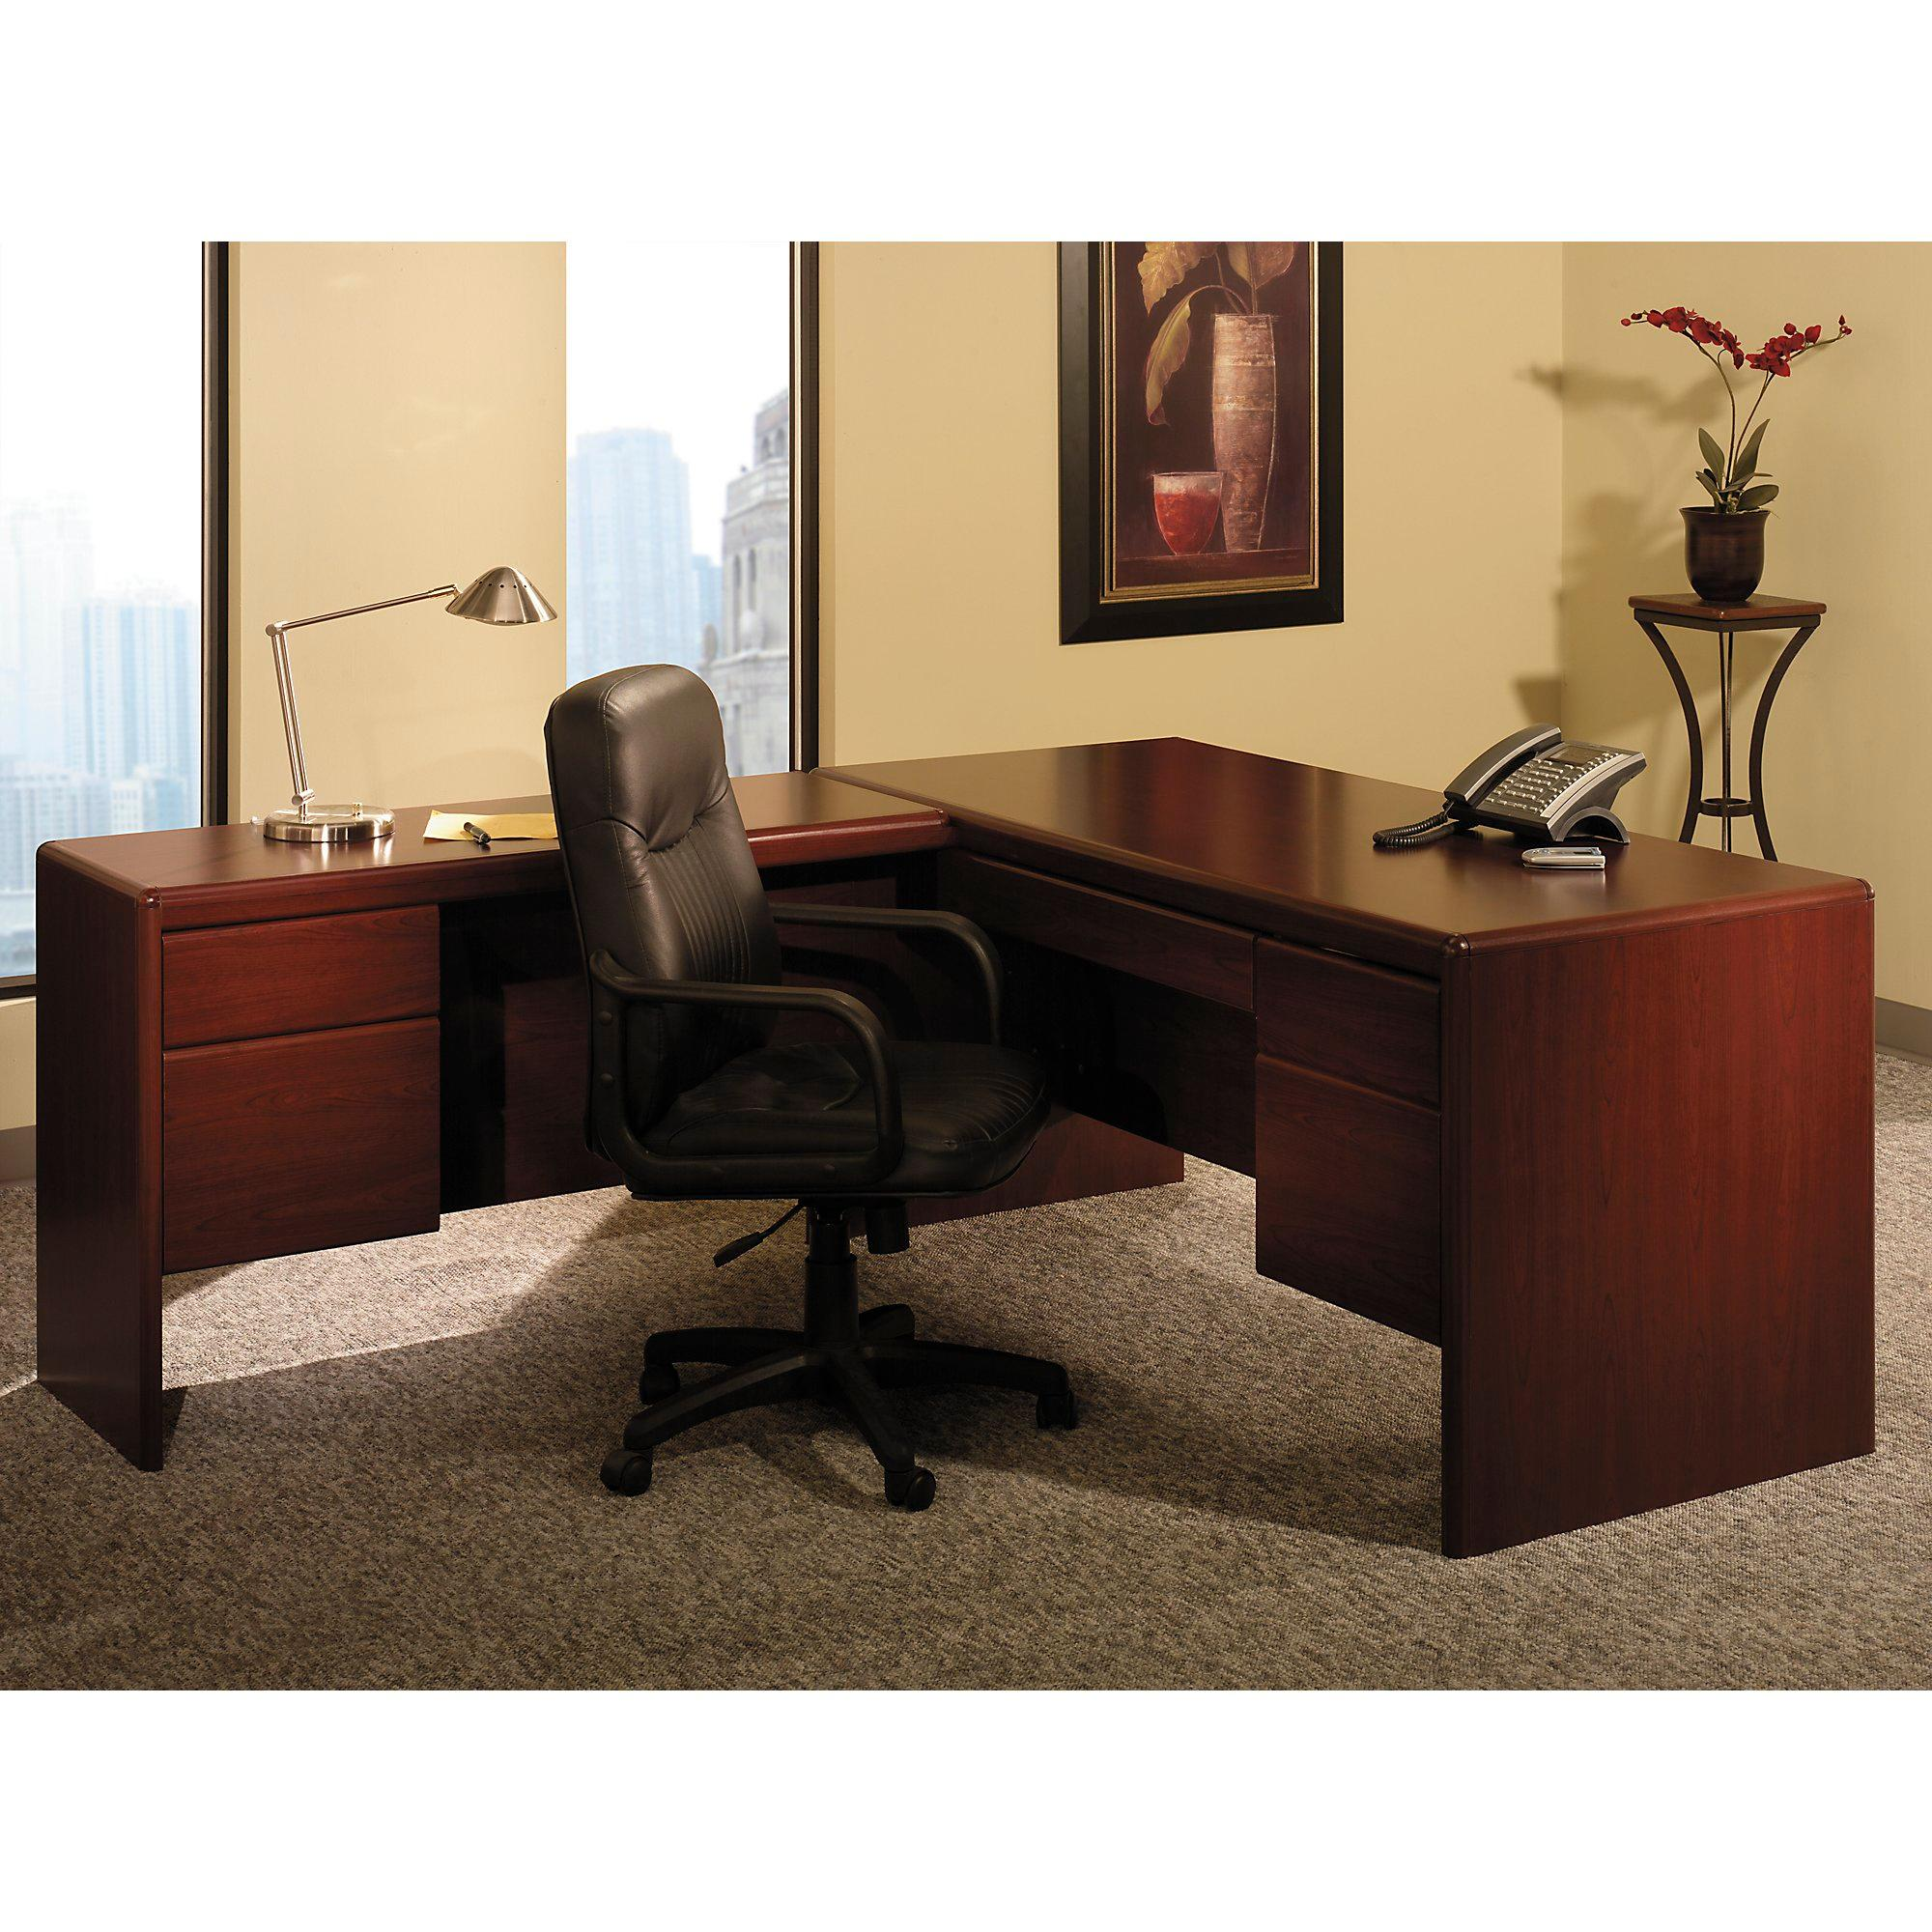 drawers home espresso in office product computer l overstock today desk garden bush free cabot oak furniture shipping with shaped